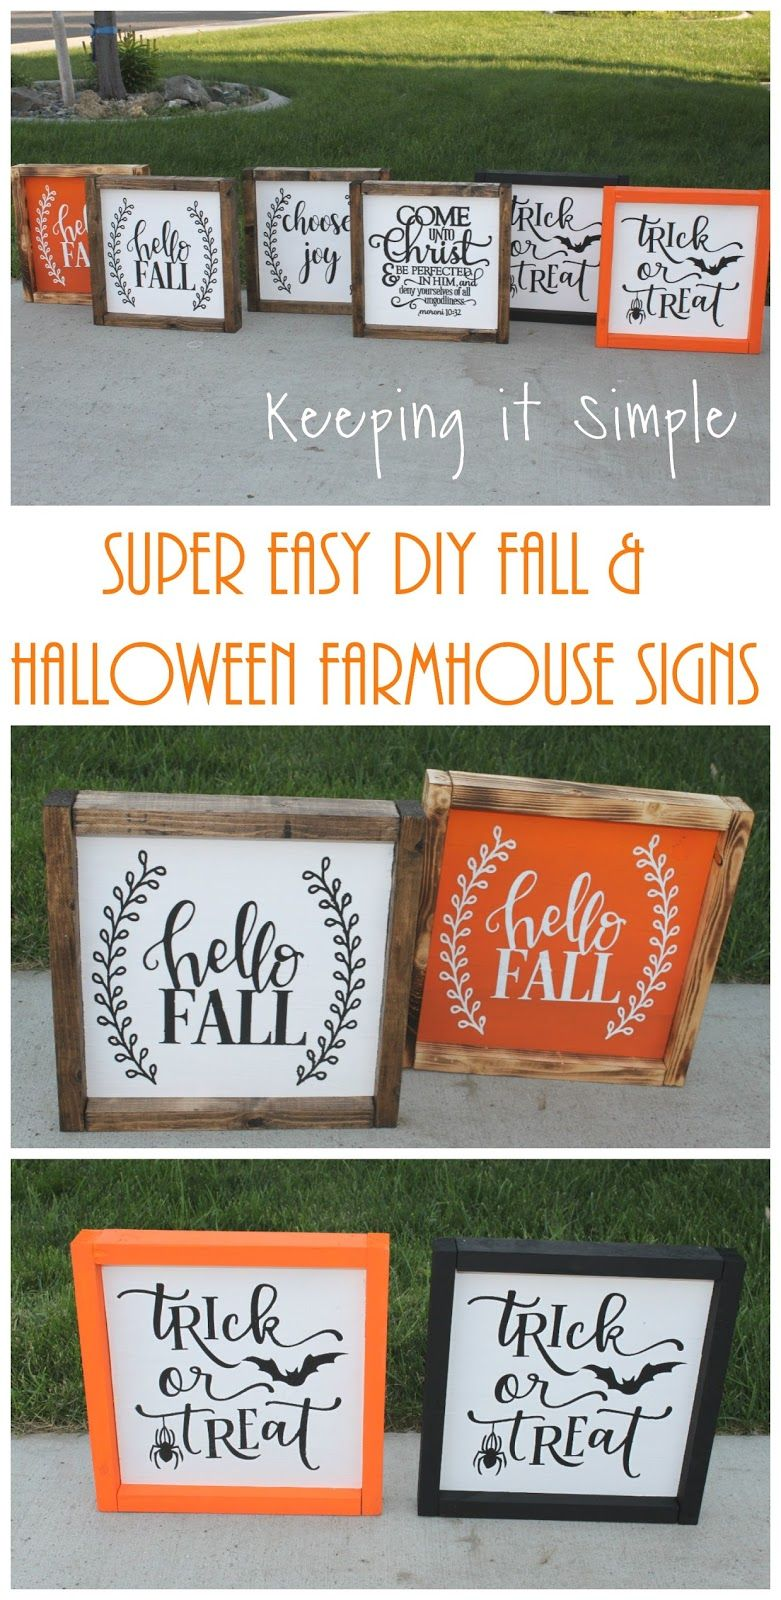 Super Easy Diy Fall And Halloween Farmhouse Signs Keeping